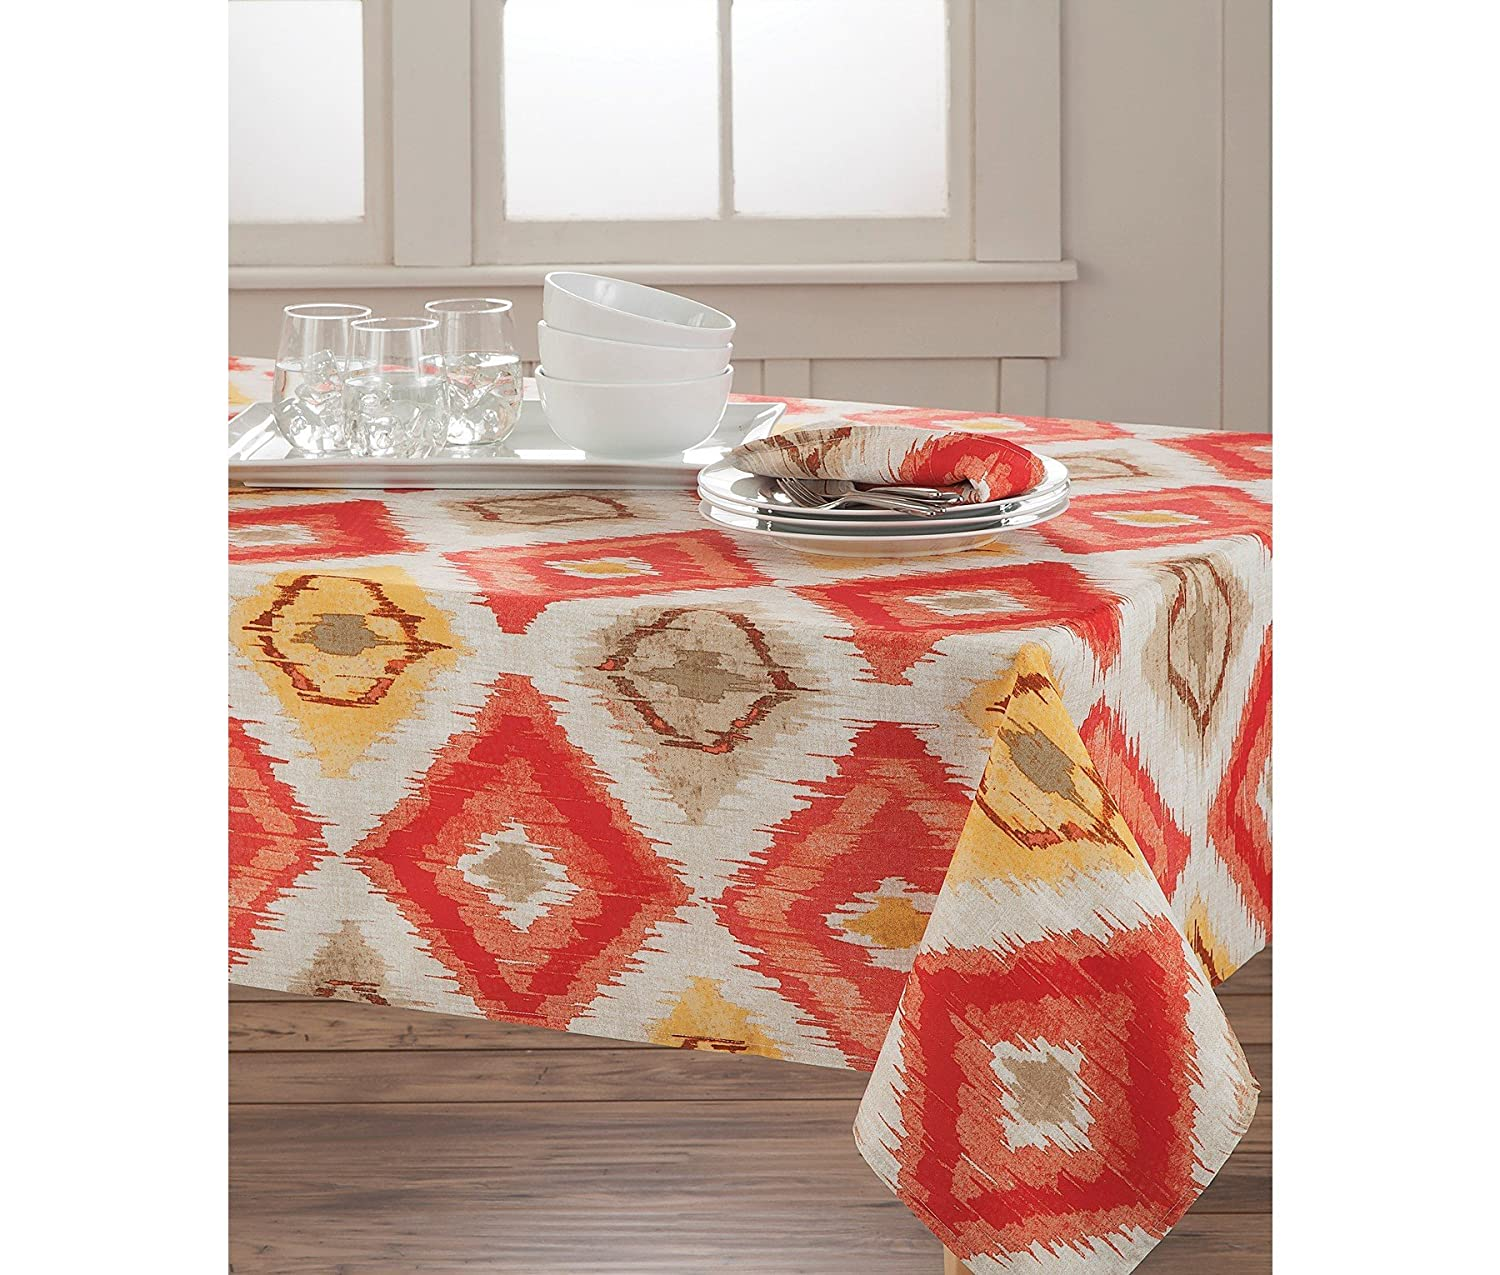 HomeCrate Classic Brussels Ikat Collection Microfiber Tablecloth Coral 70 Round 2199F070RNDCRL 70 Round